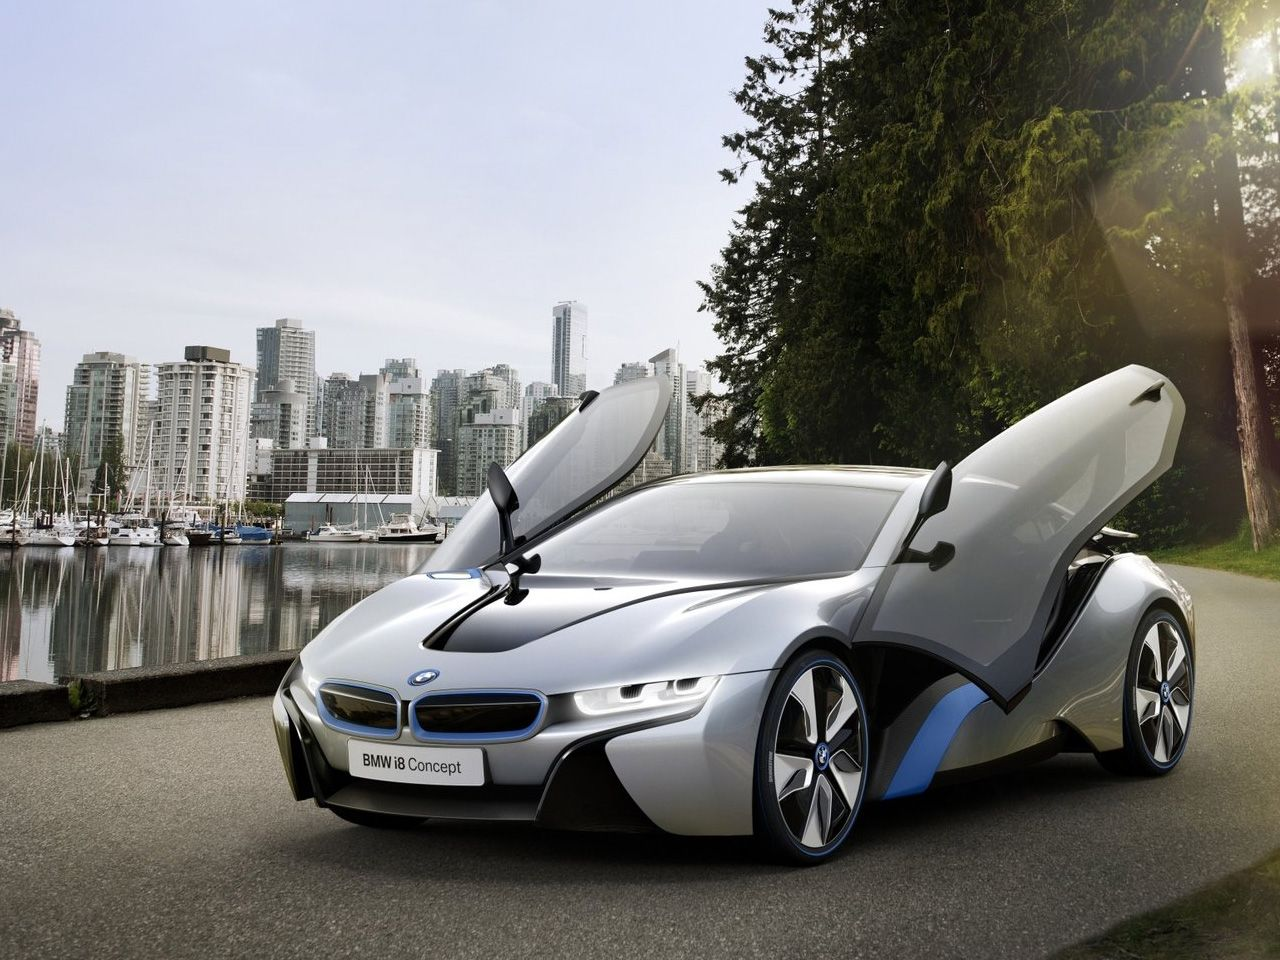 New BMW Electric Car Price How Do You Like This Exotic Car Get - Cool cars and prices